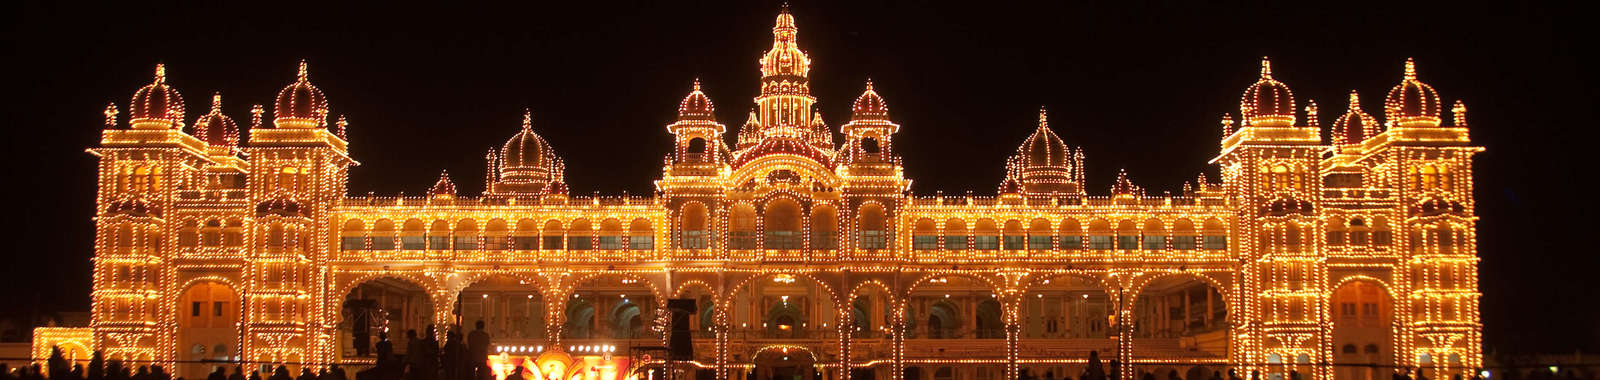 See Ambavilas Palace, Mysore Palace illuminated at night on a luxury holiday to South India